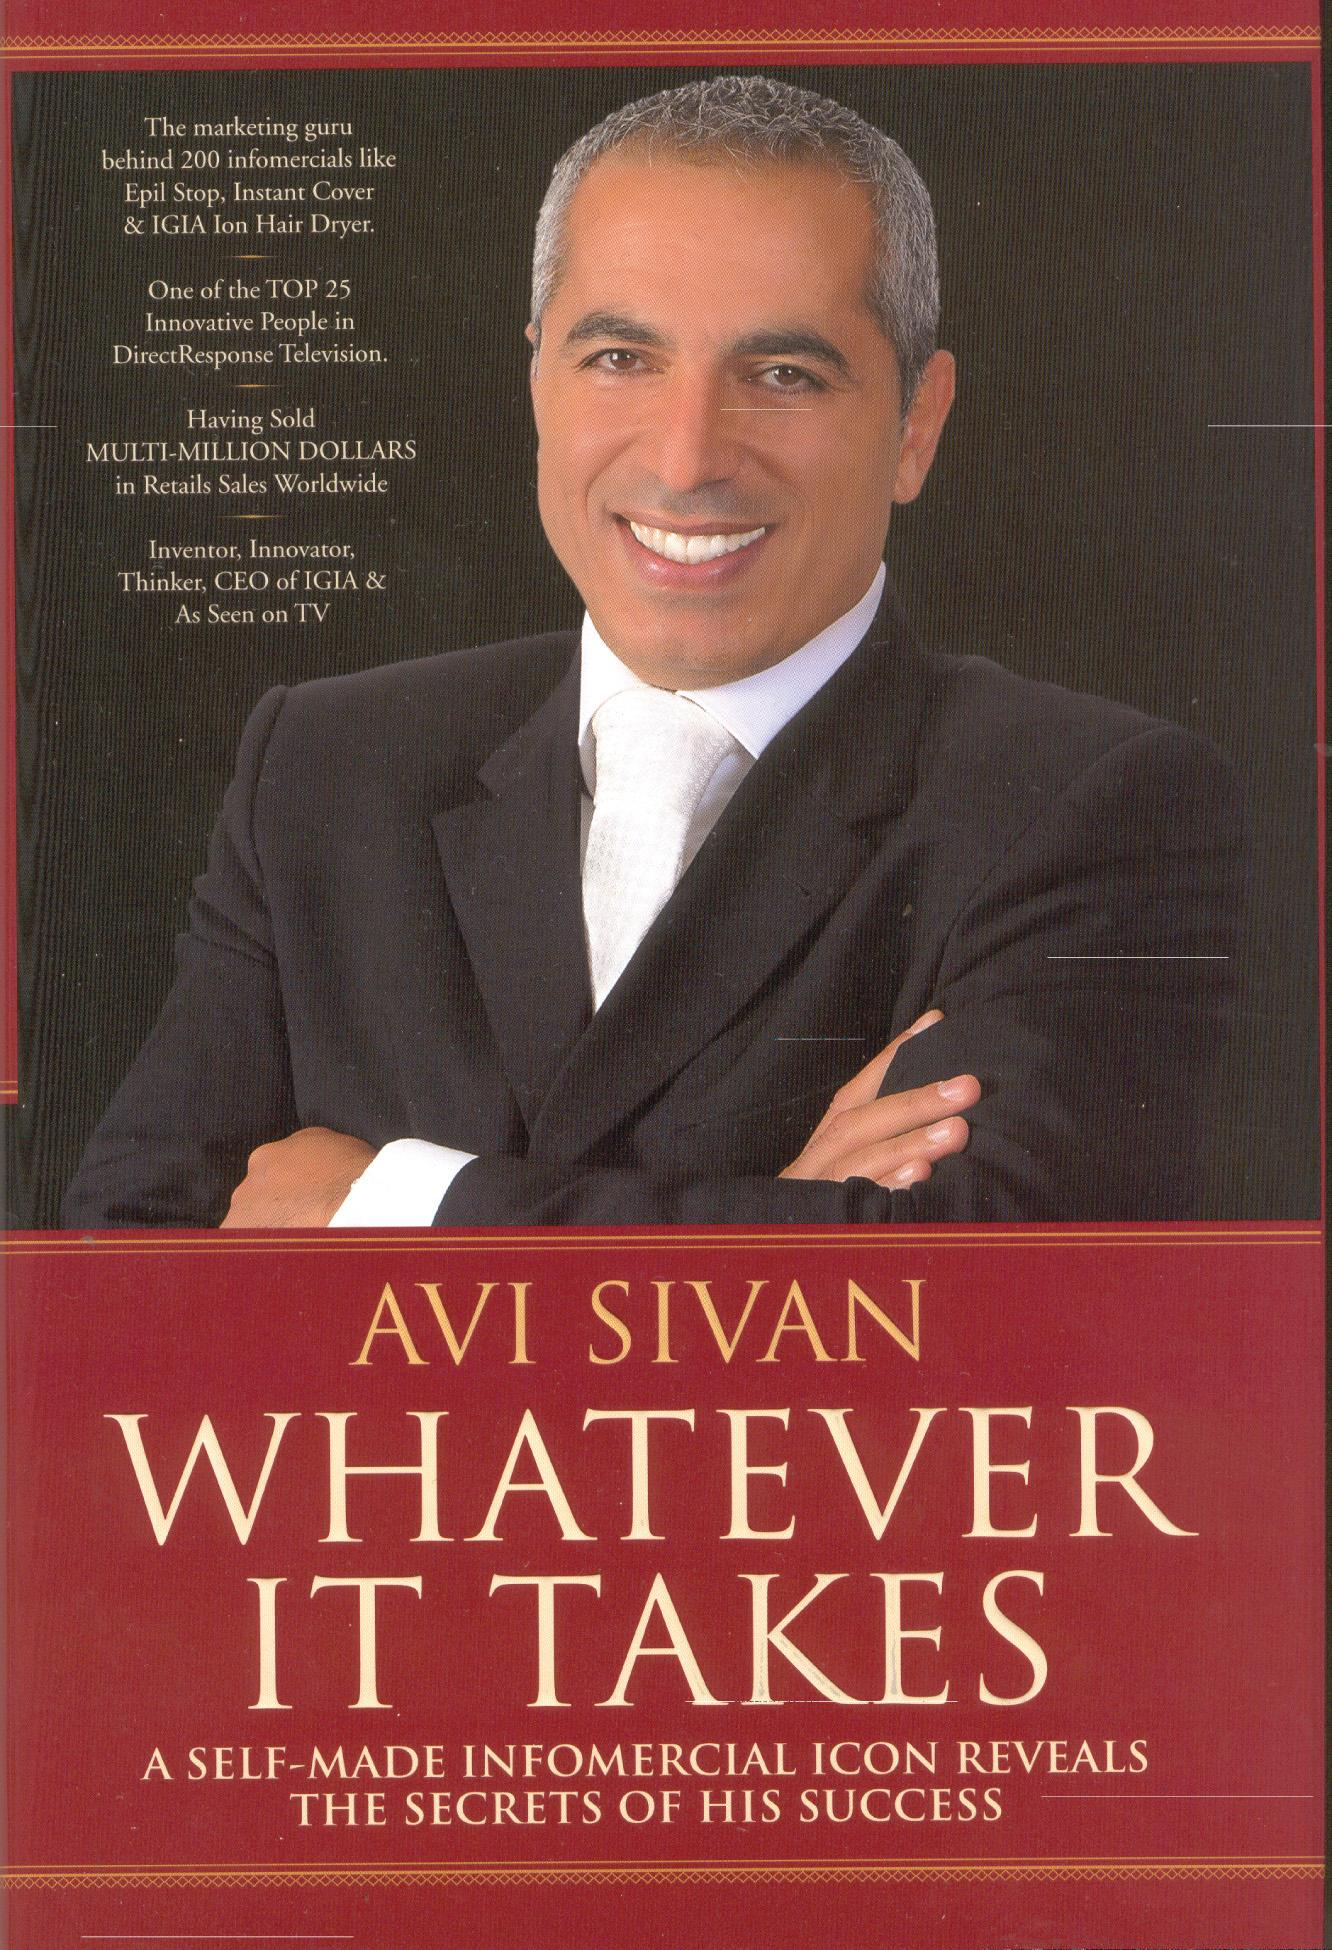 As Seen On TV 'Whatever It Takes' by Avi Sivan